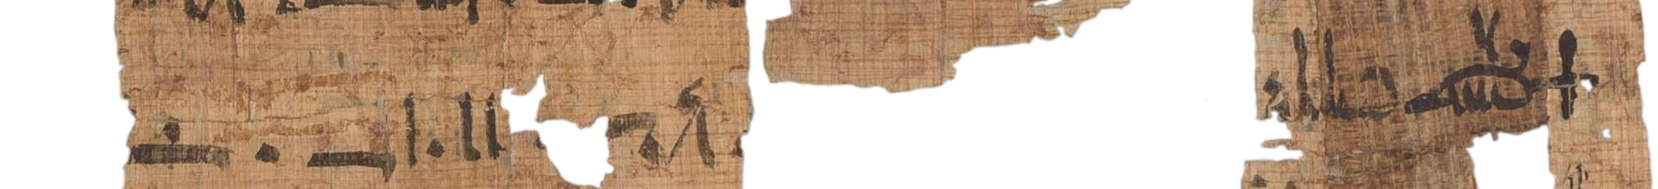 the Turin king list 4.3 (photo of the hieratic text)